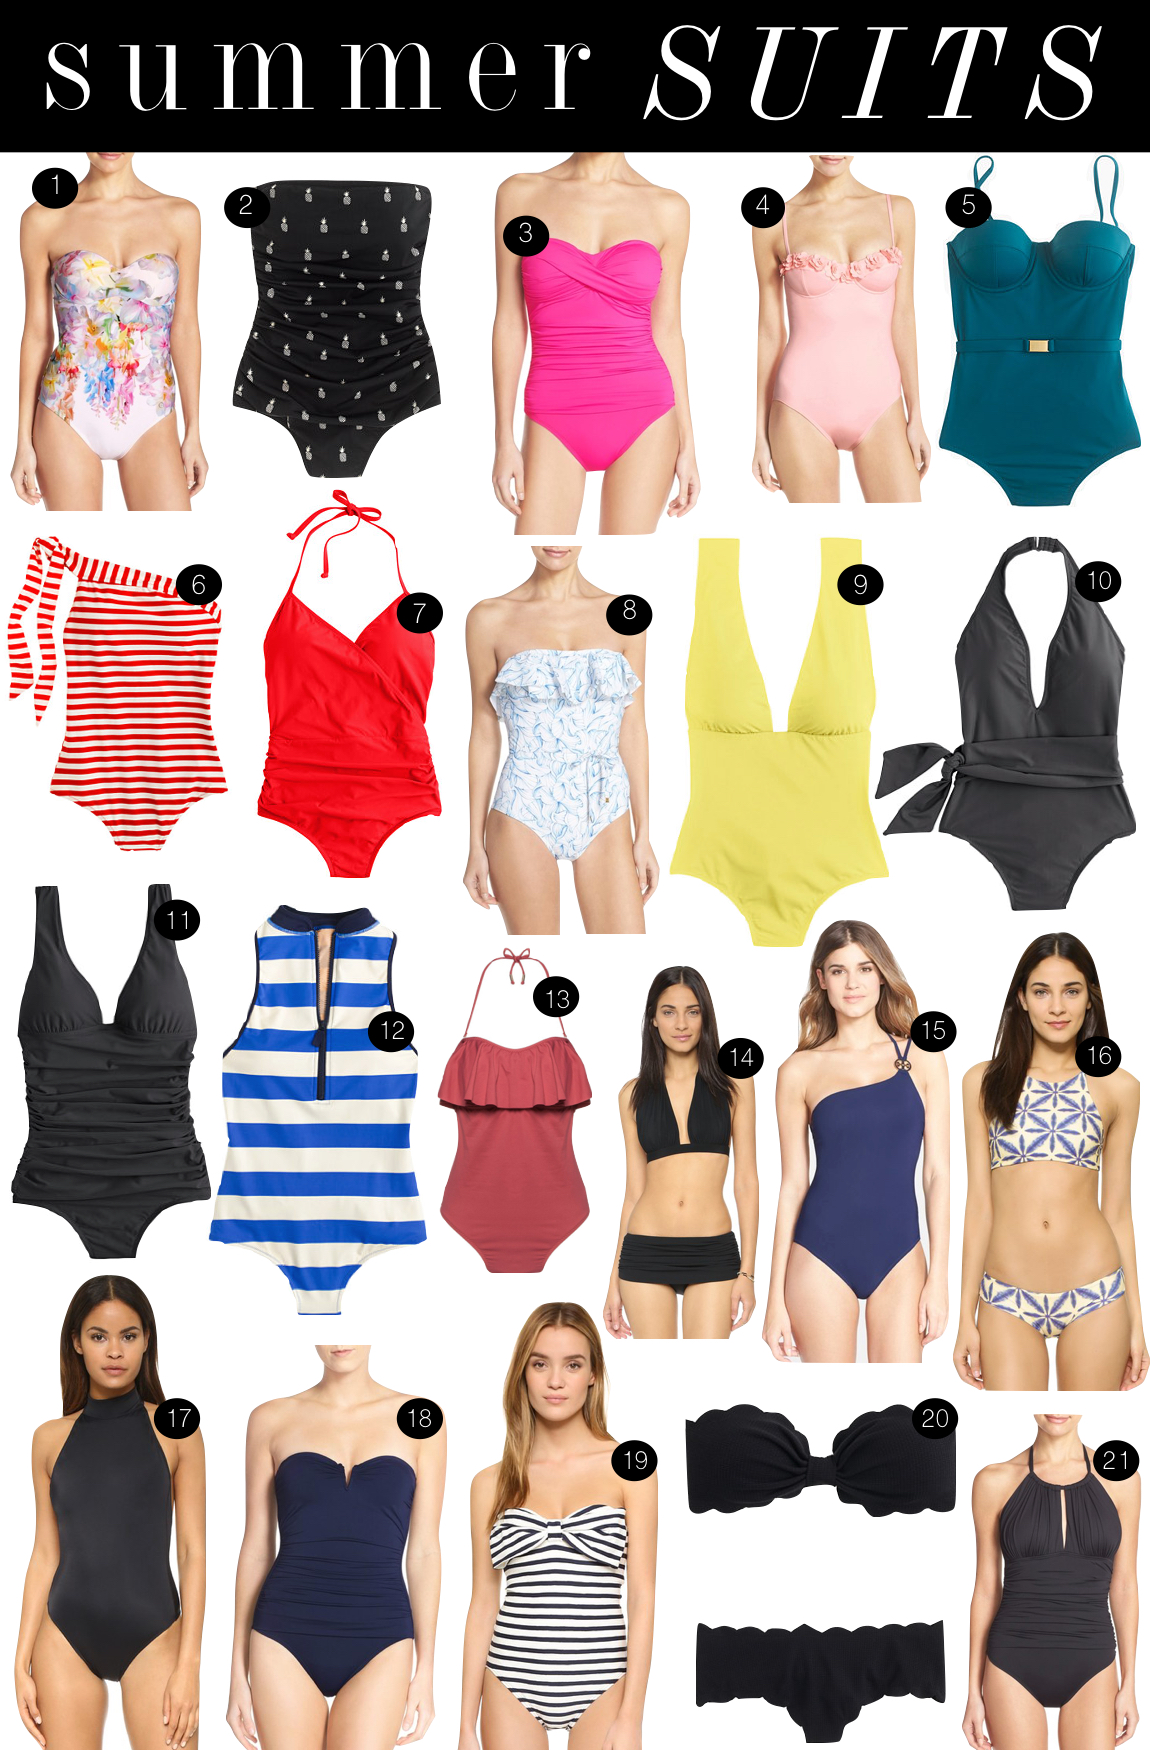 Summer Suits | Kiki's List